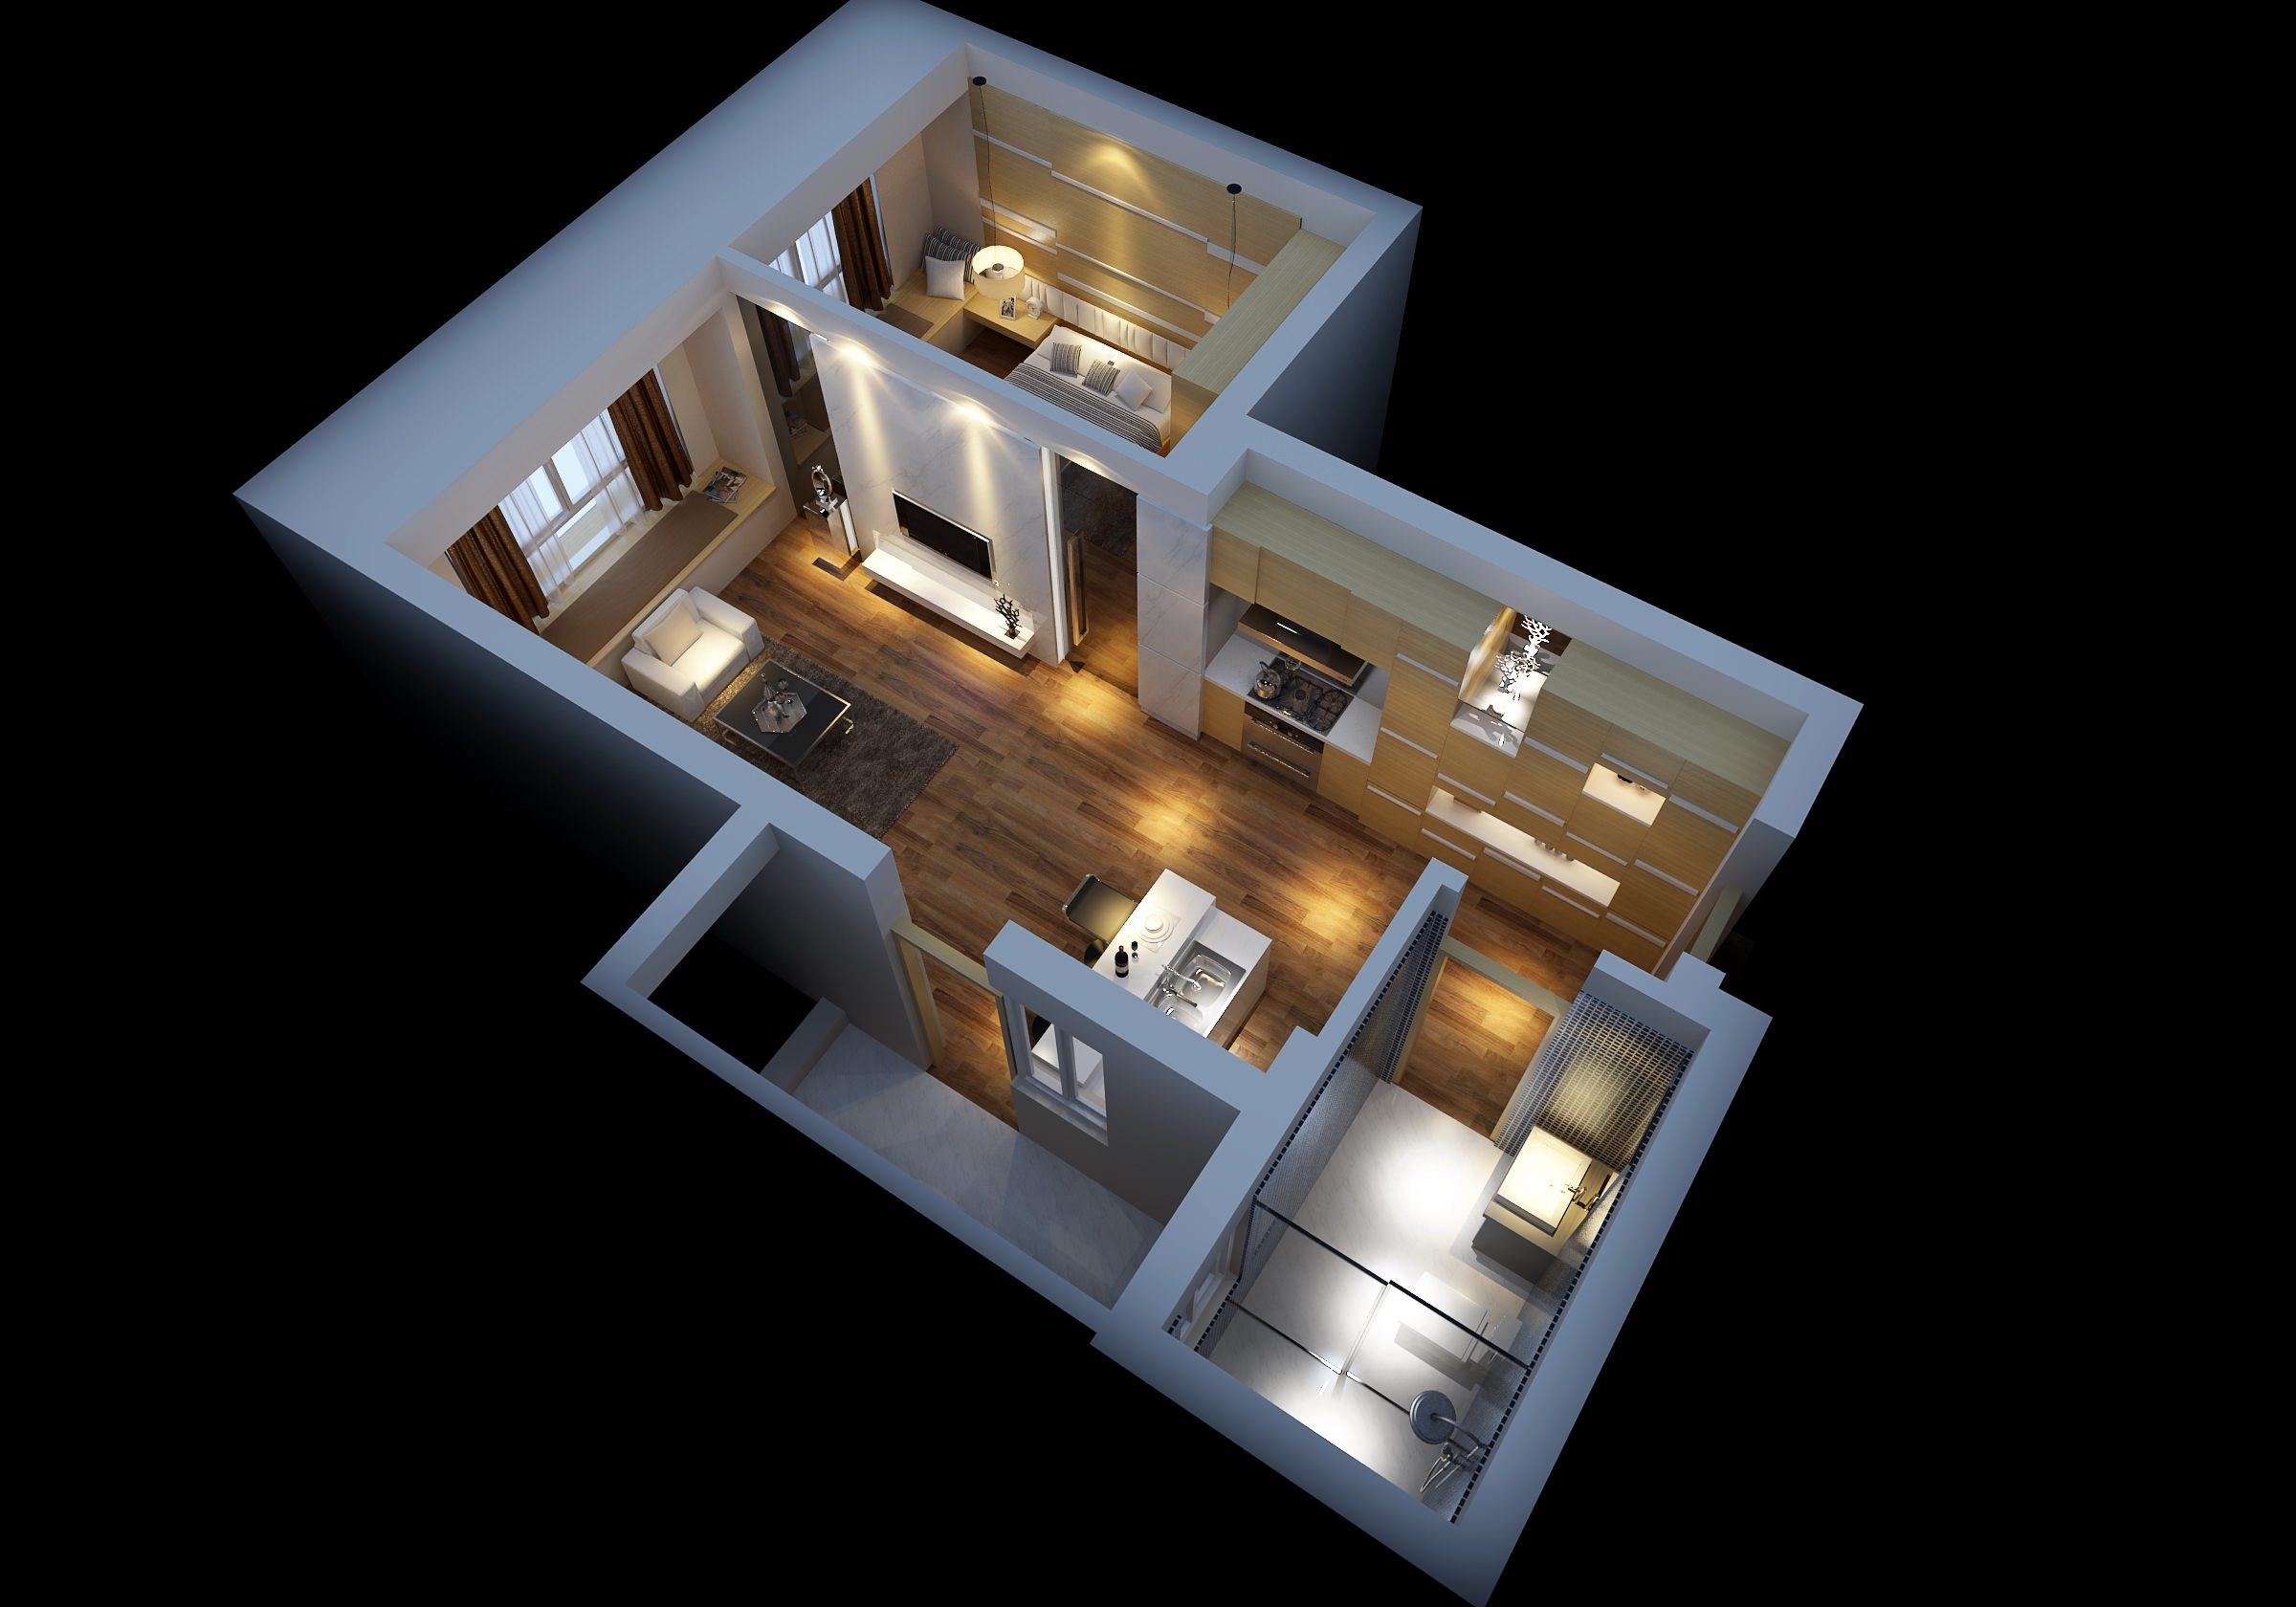 Modern house interior with wooden floor fu 3d model max for 3d decoration models